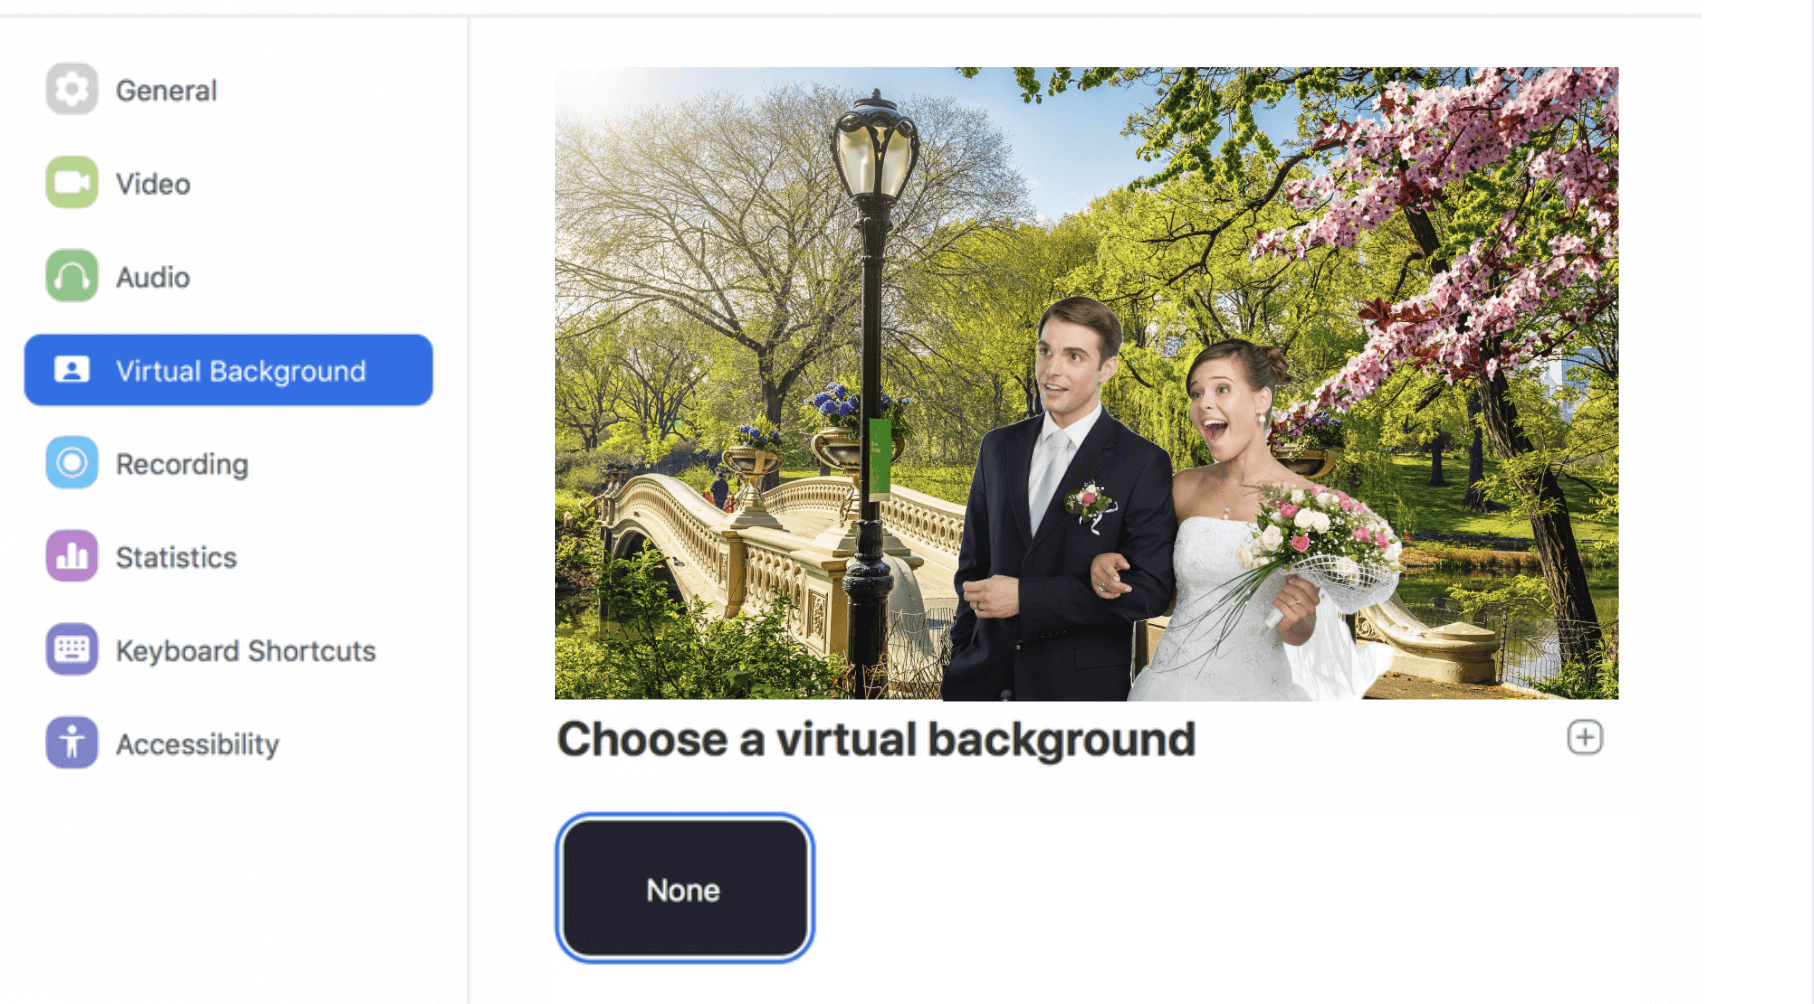 Instagrammable background for your virtual wedding